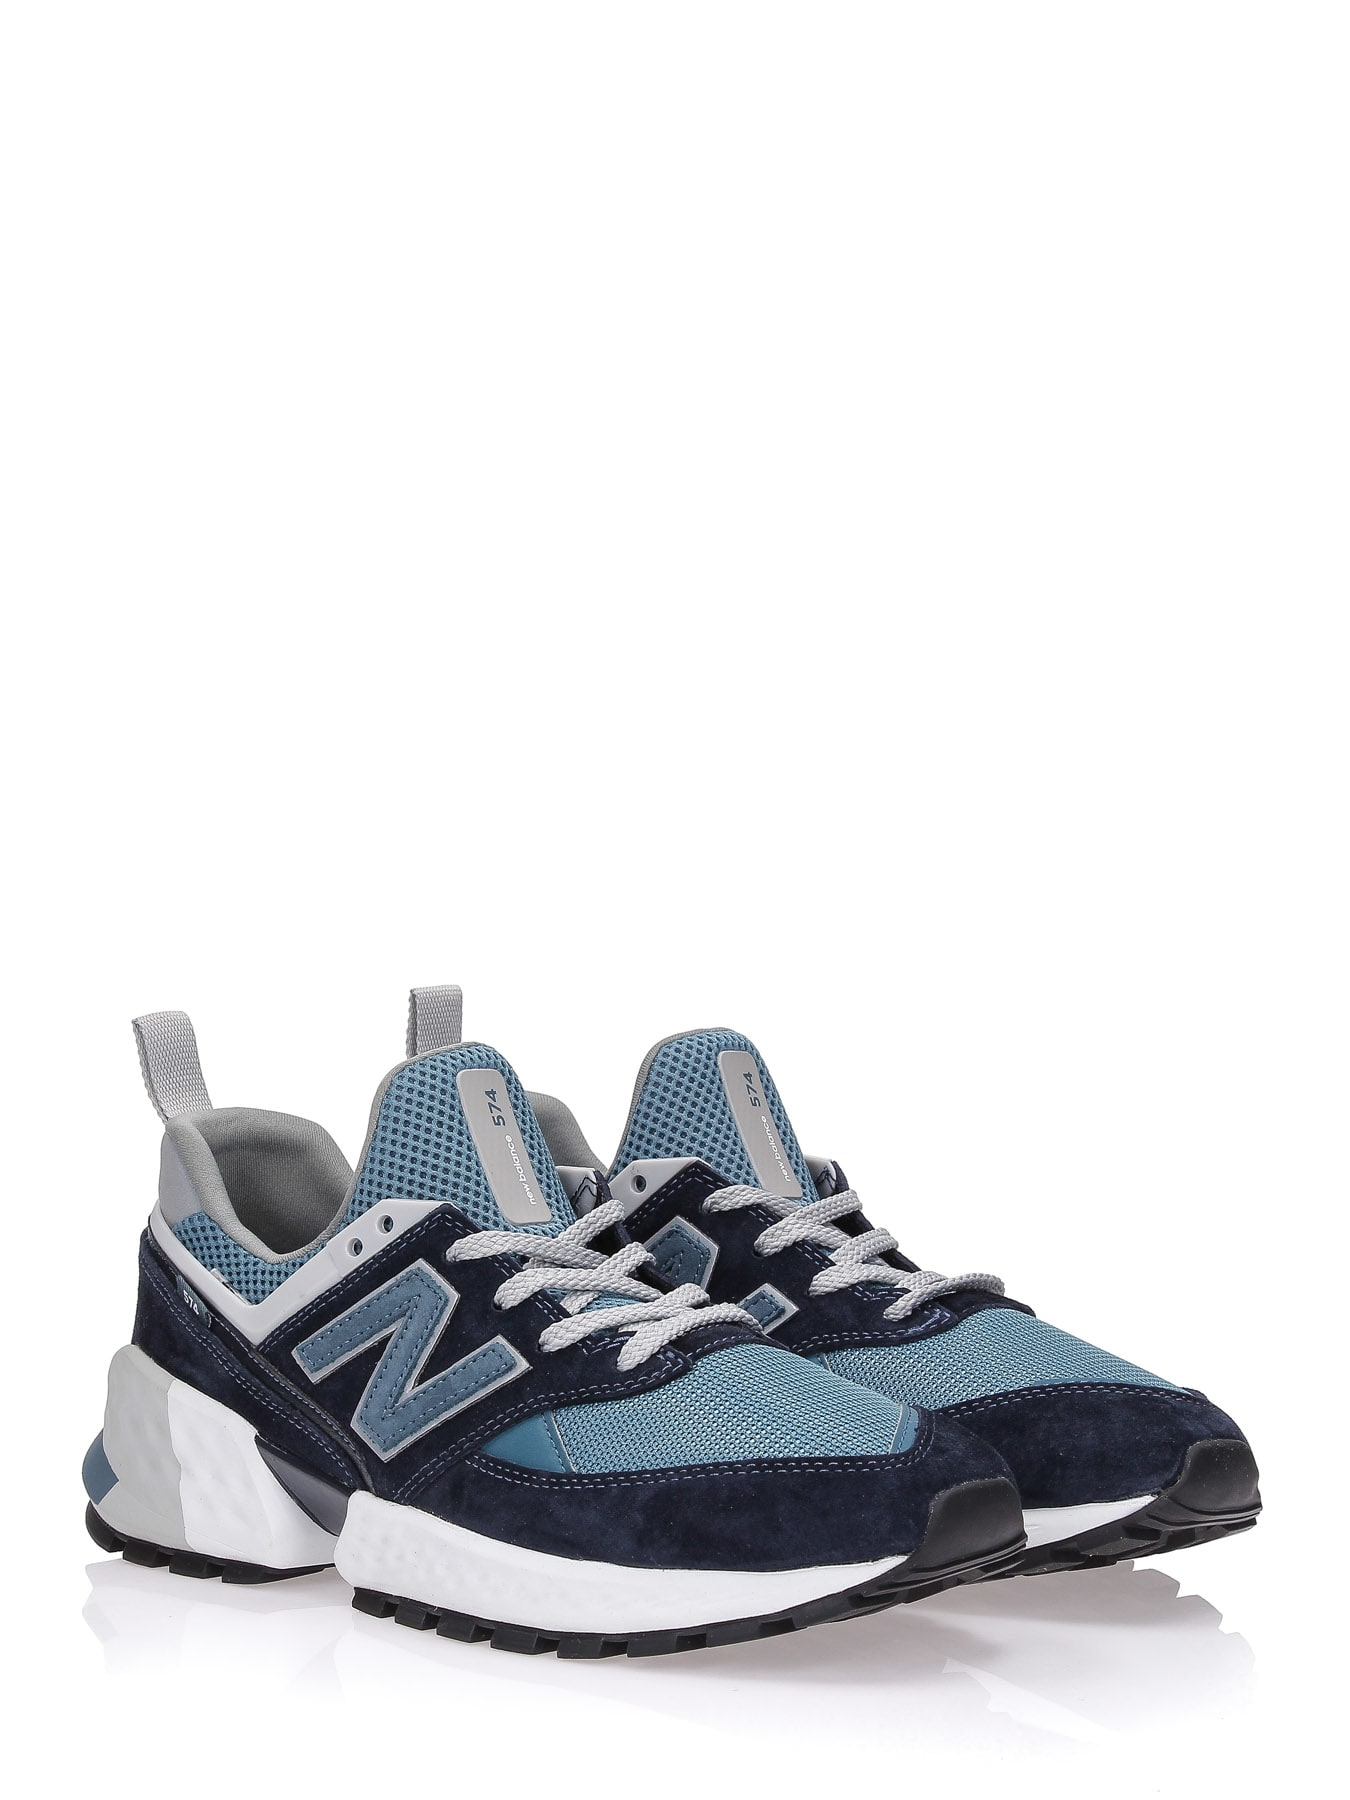 san francisco 00dce 228d7 New Balance Sneakers Lifestyle